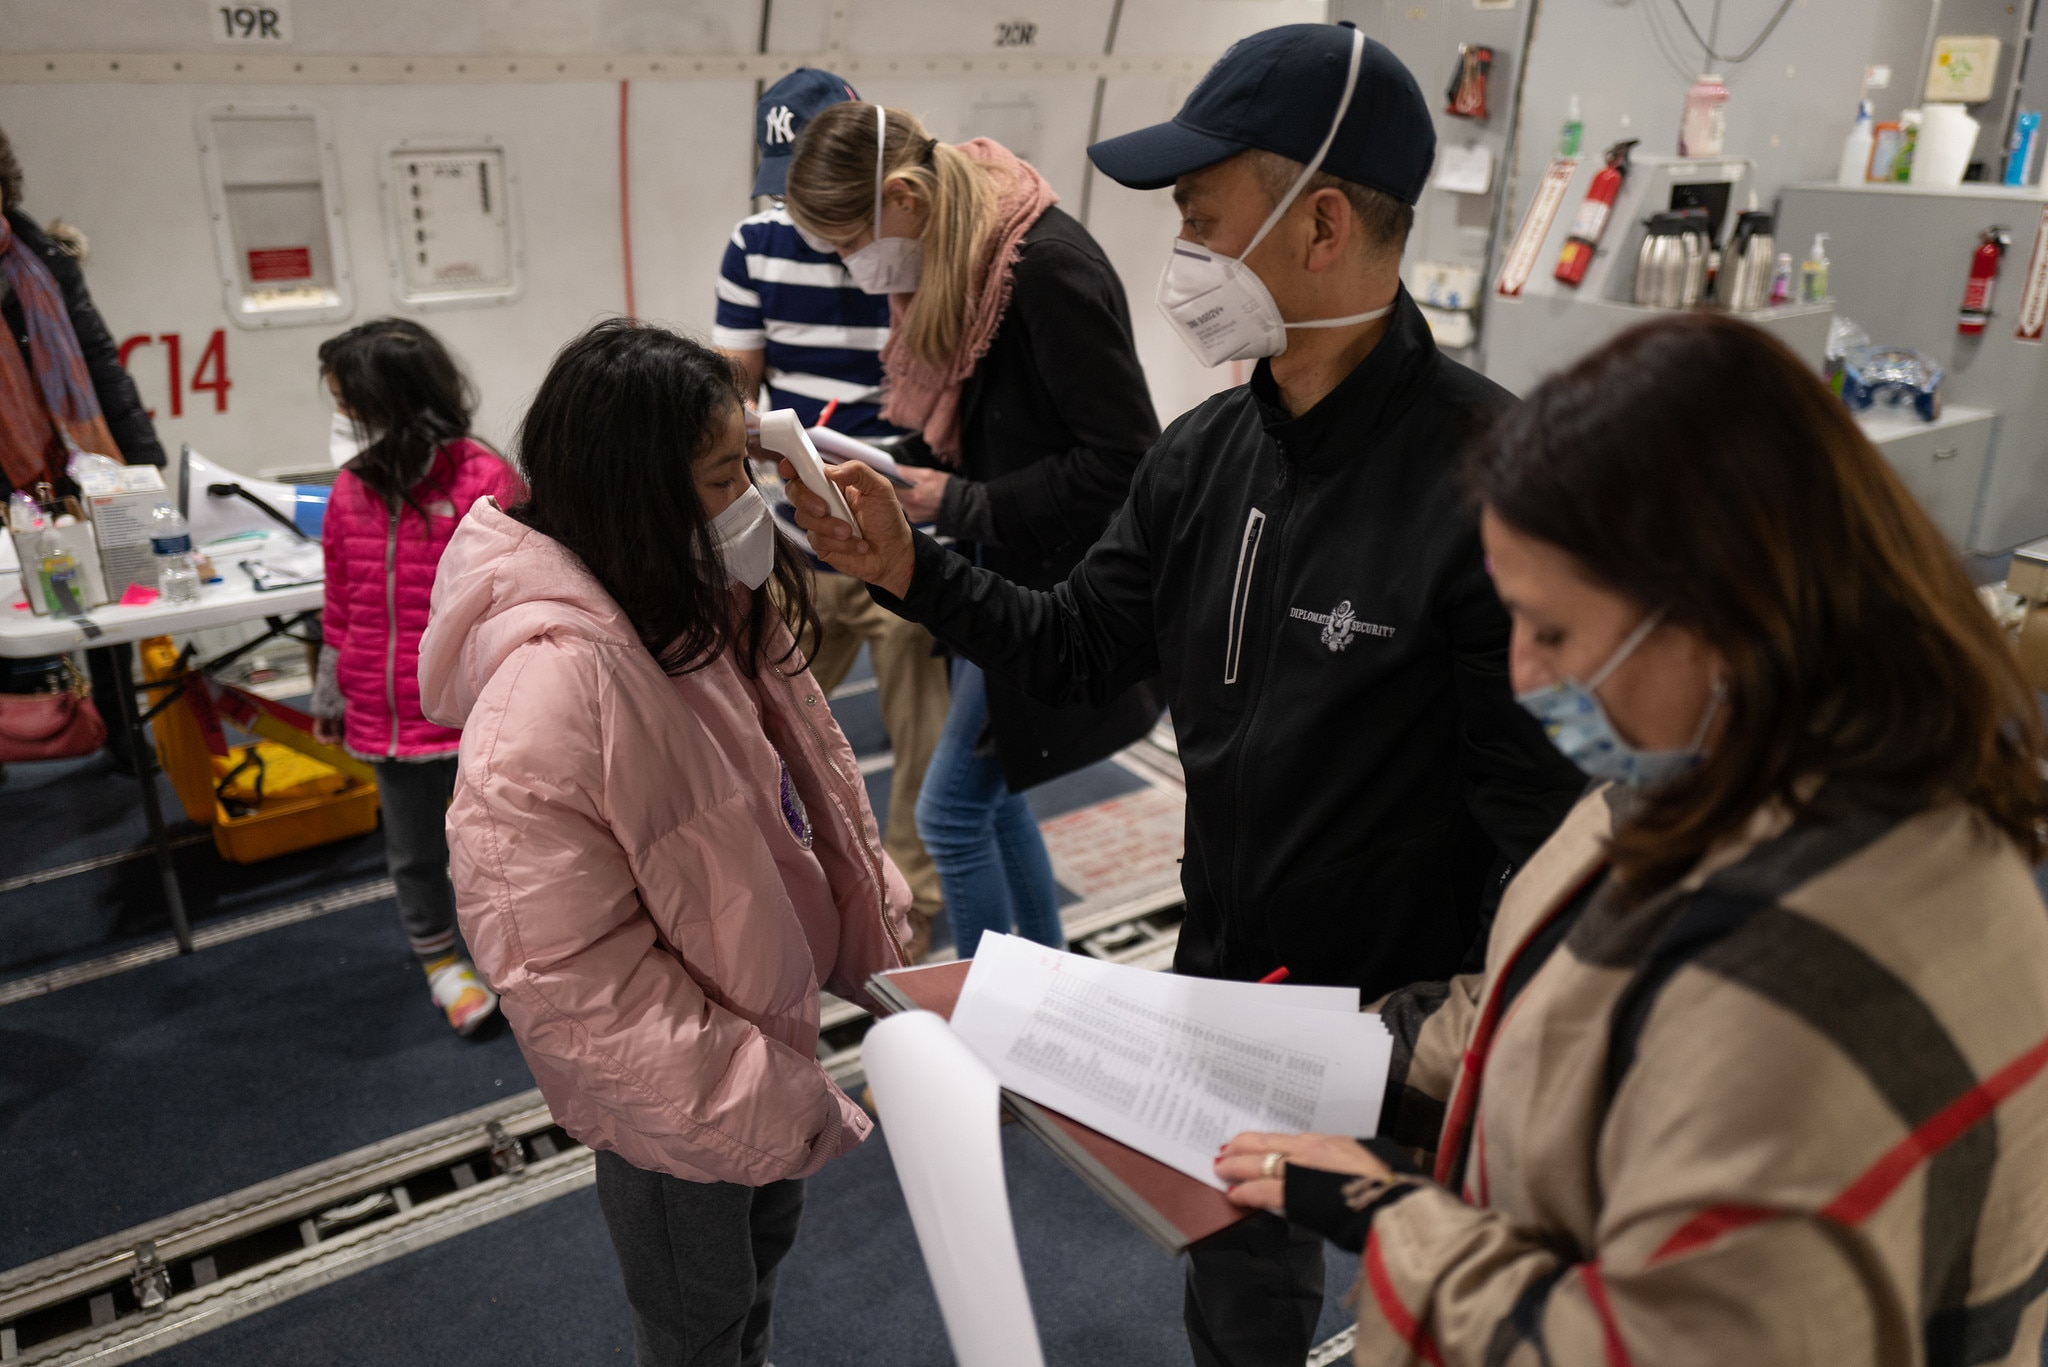 A DSS Regional Security Officer checks a young girl's temperature on the charter flight evacuatingAmerican citizens fromWuhan, China, Jan. 29, 2020. (U.S. Department of State photo)